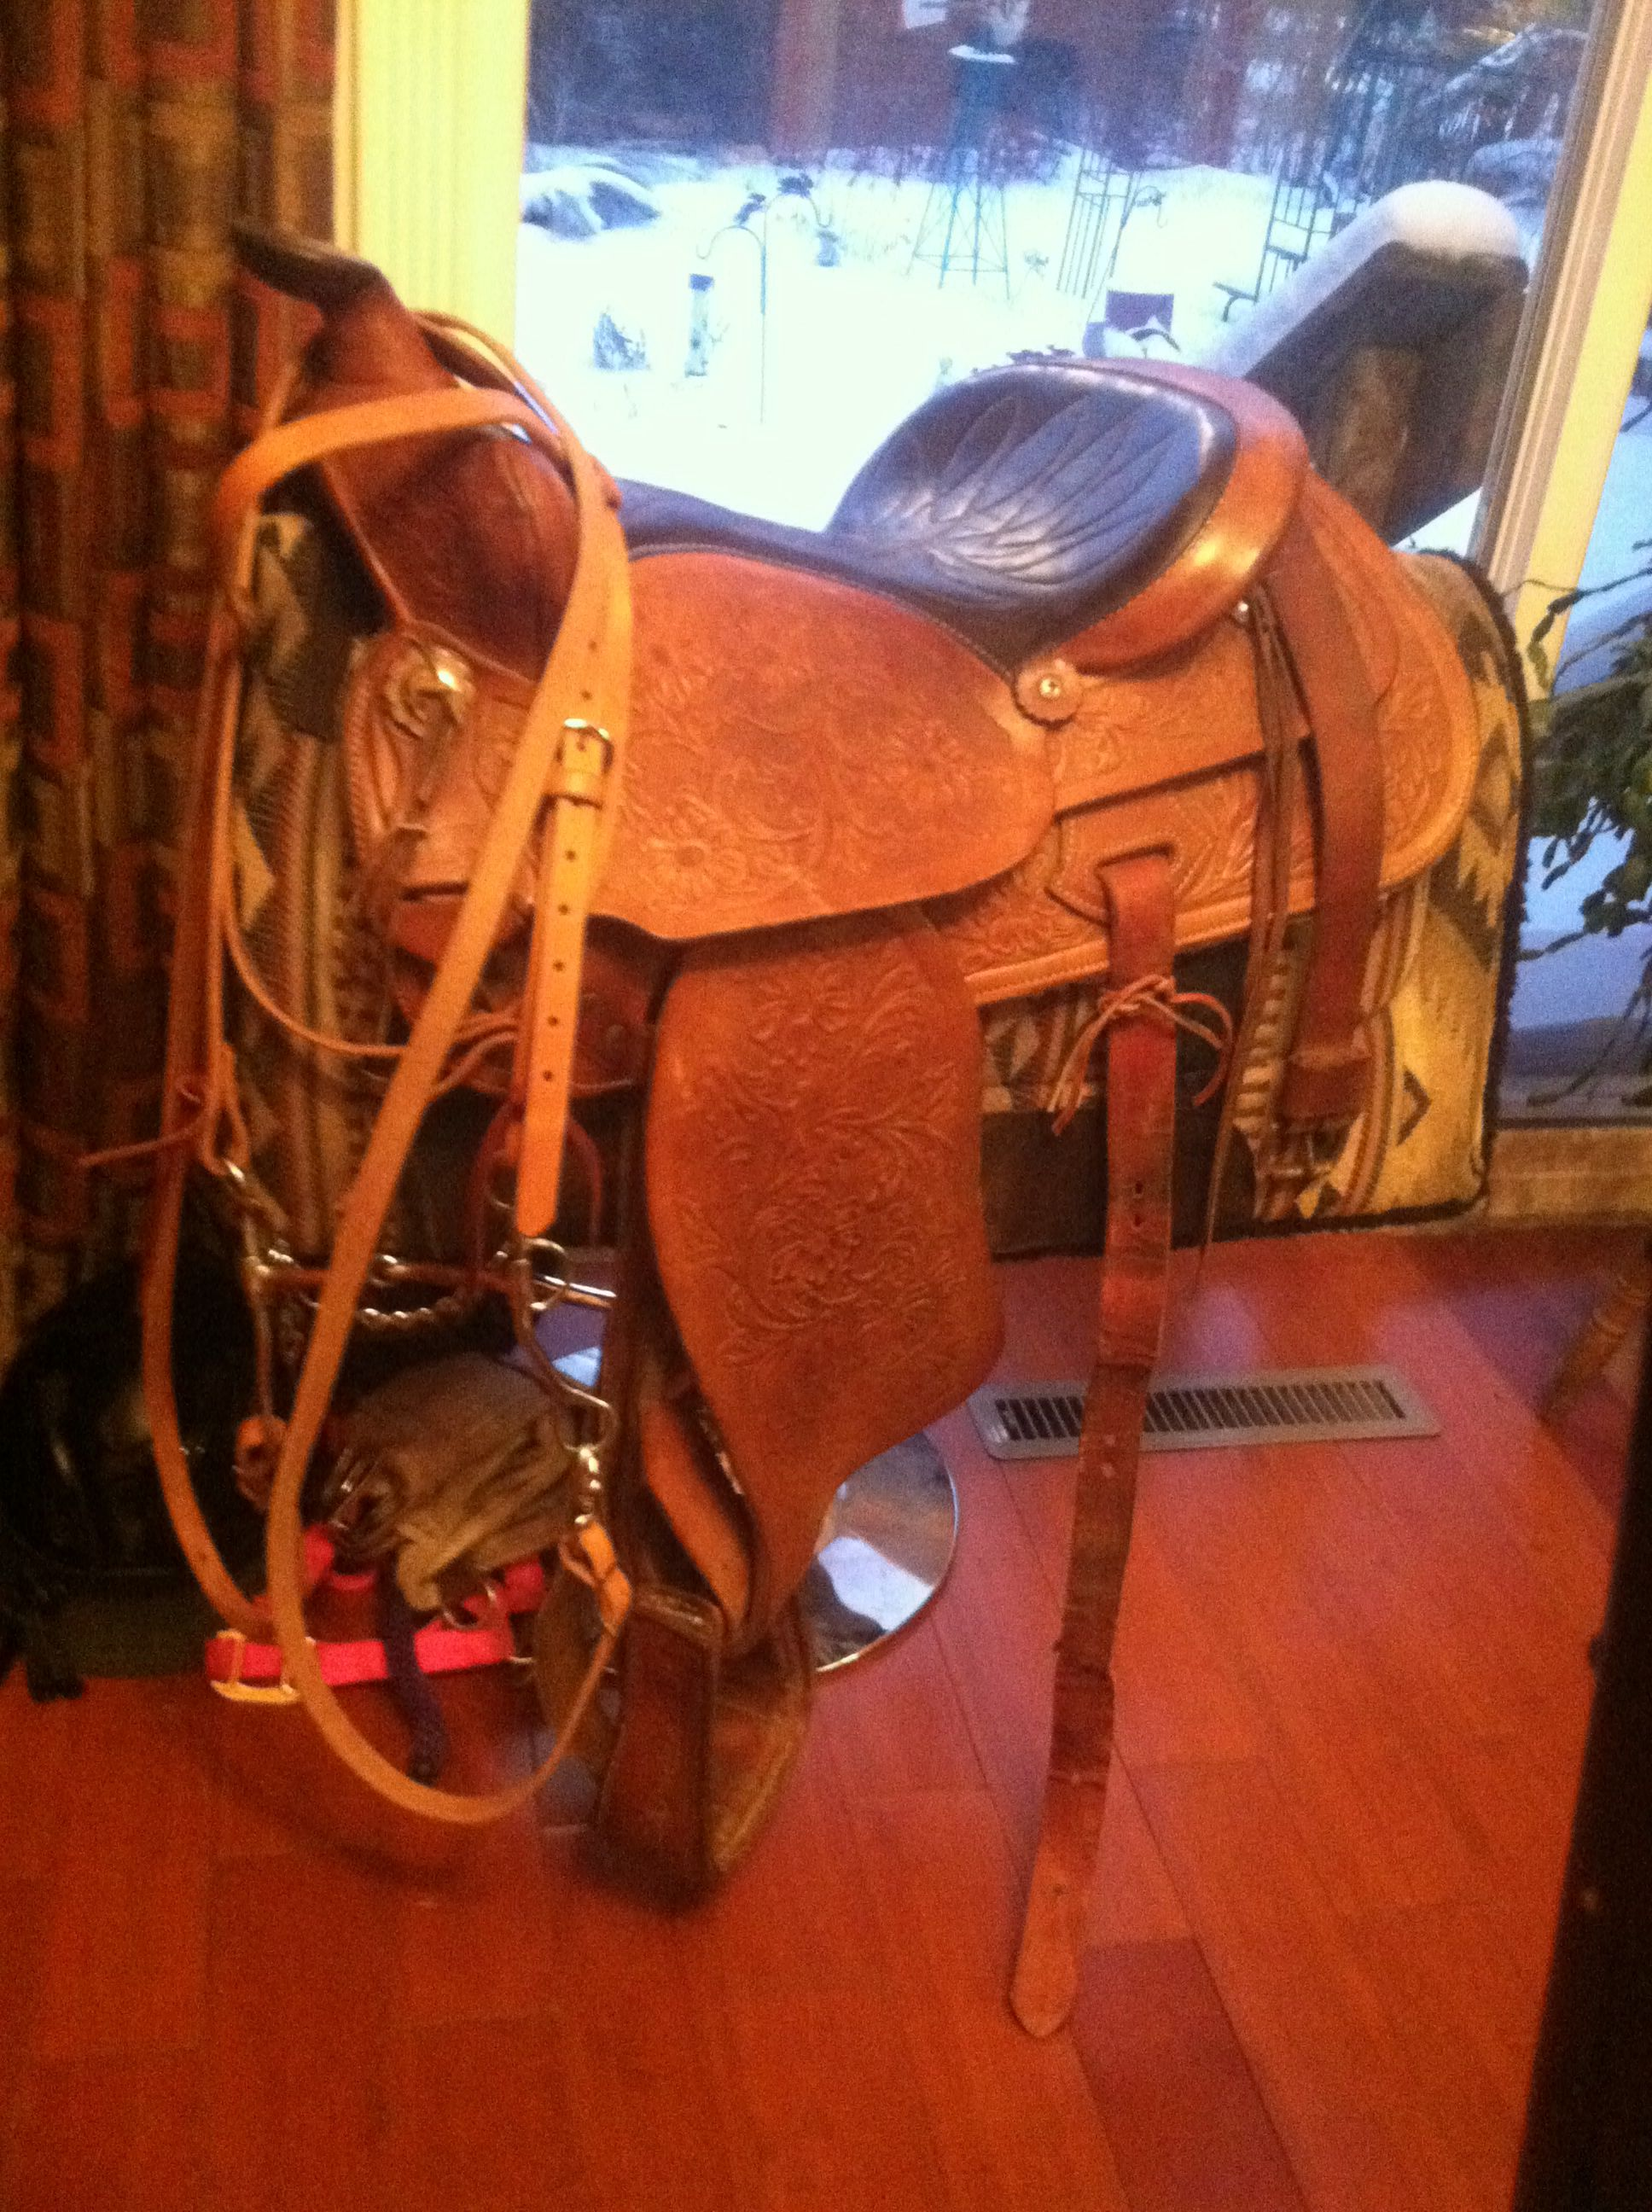 My new saddle and bridle